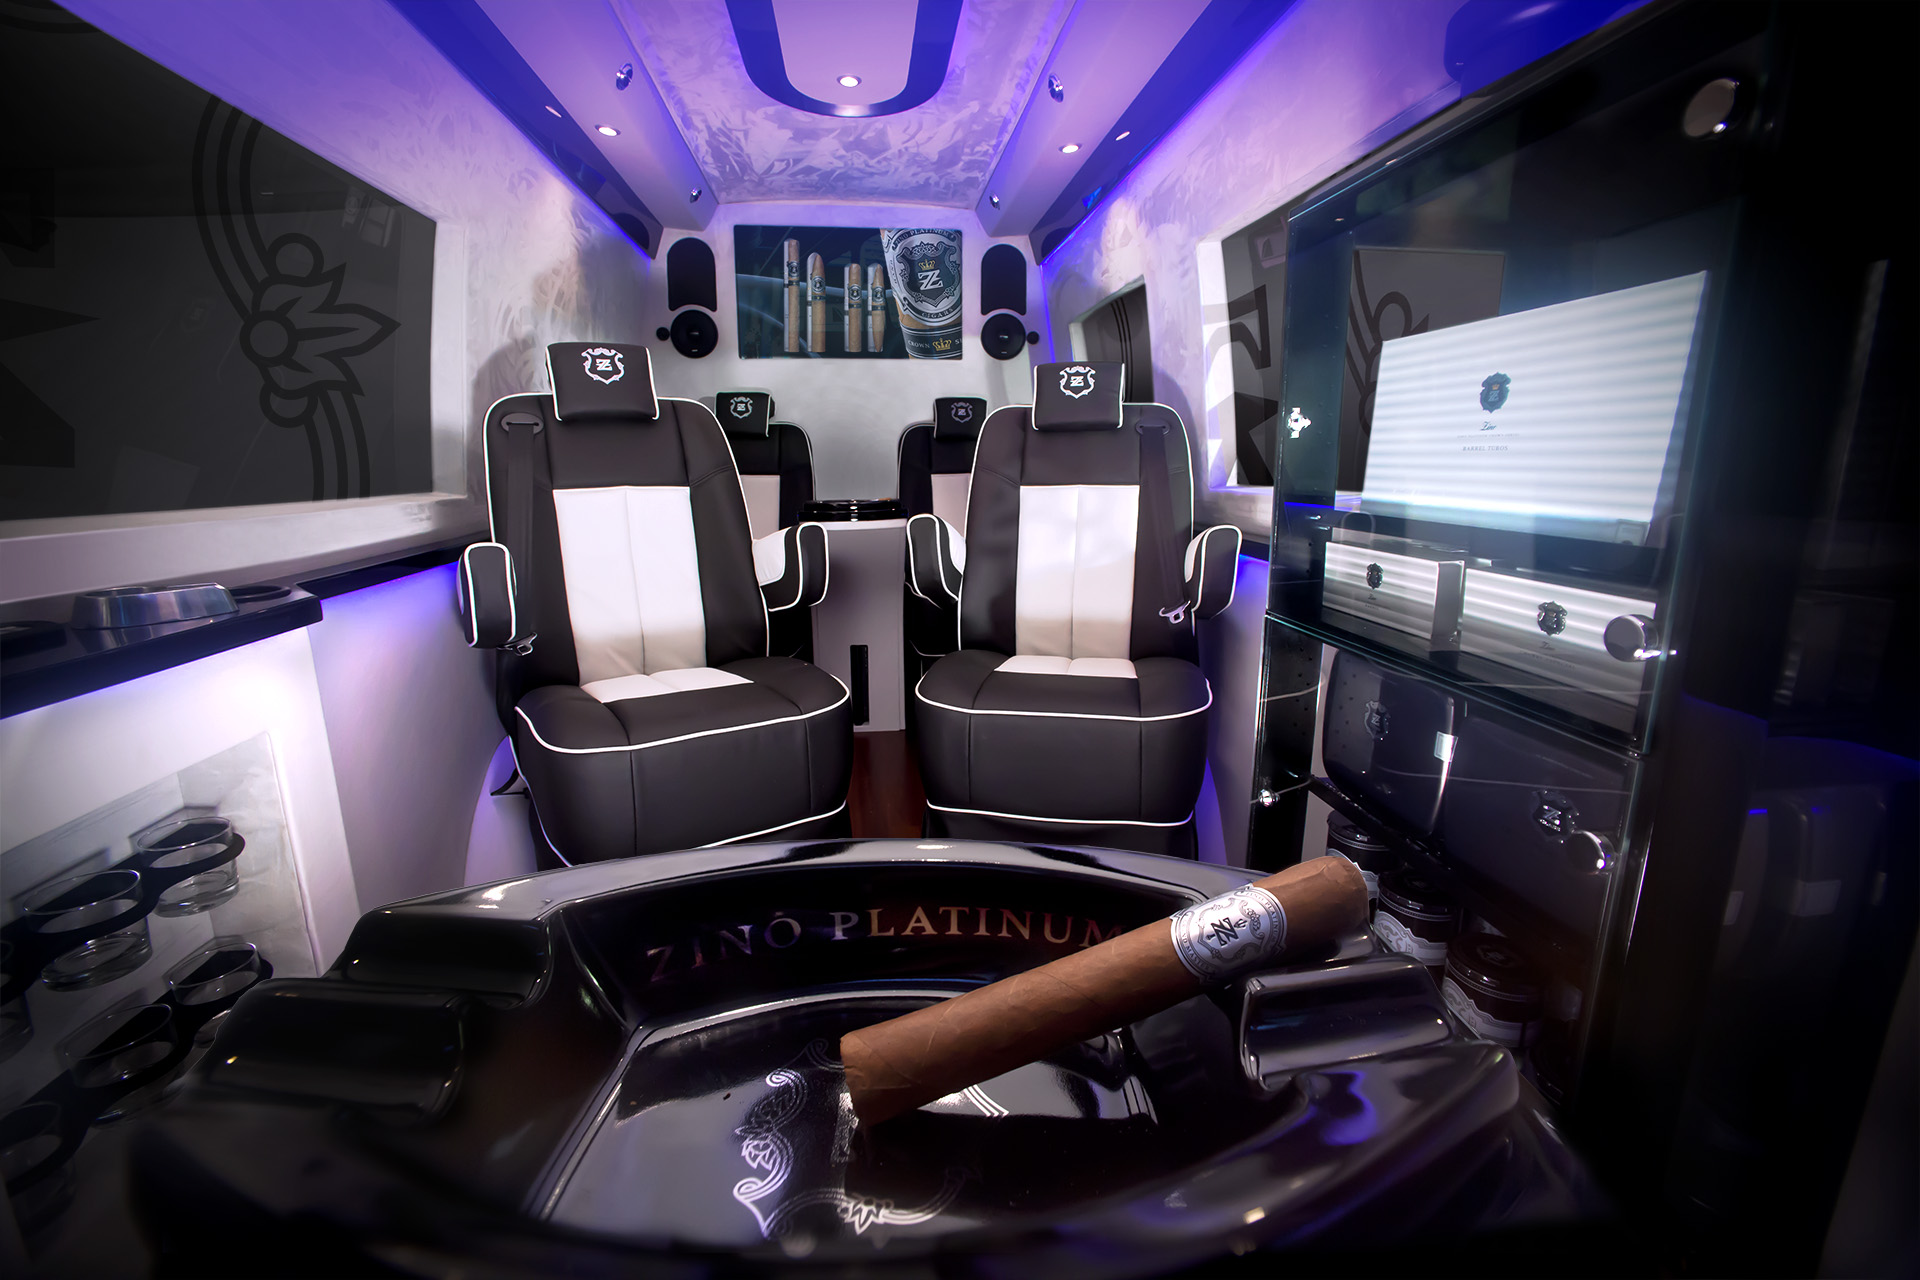 Interior Design New York Zino Mobile Luxury Lounge Goes On Tour - Fine Tobacco Nyc